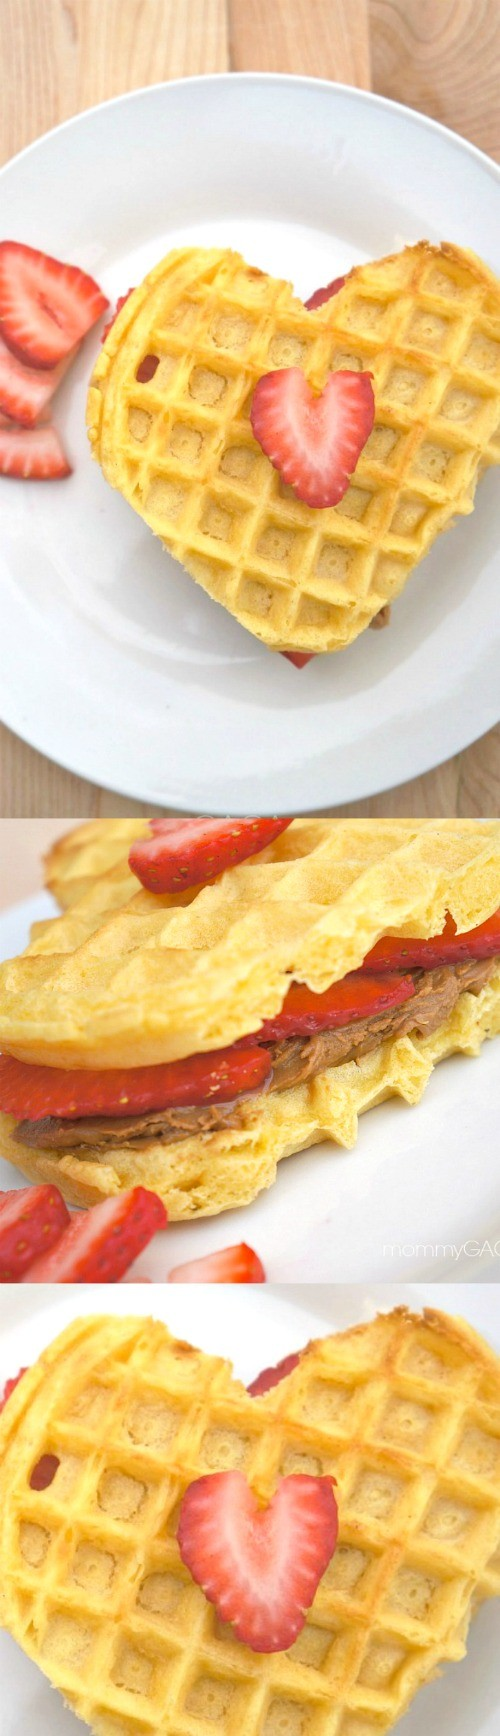 Easy Valentine's Day Breakfast: Strawberry Cookie Butter Heart Waffles - these are so cute and taste amazing!